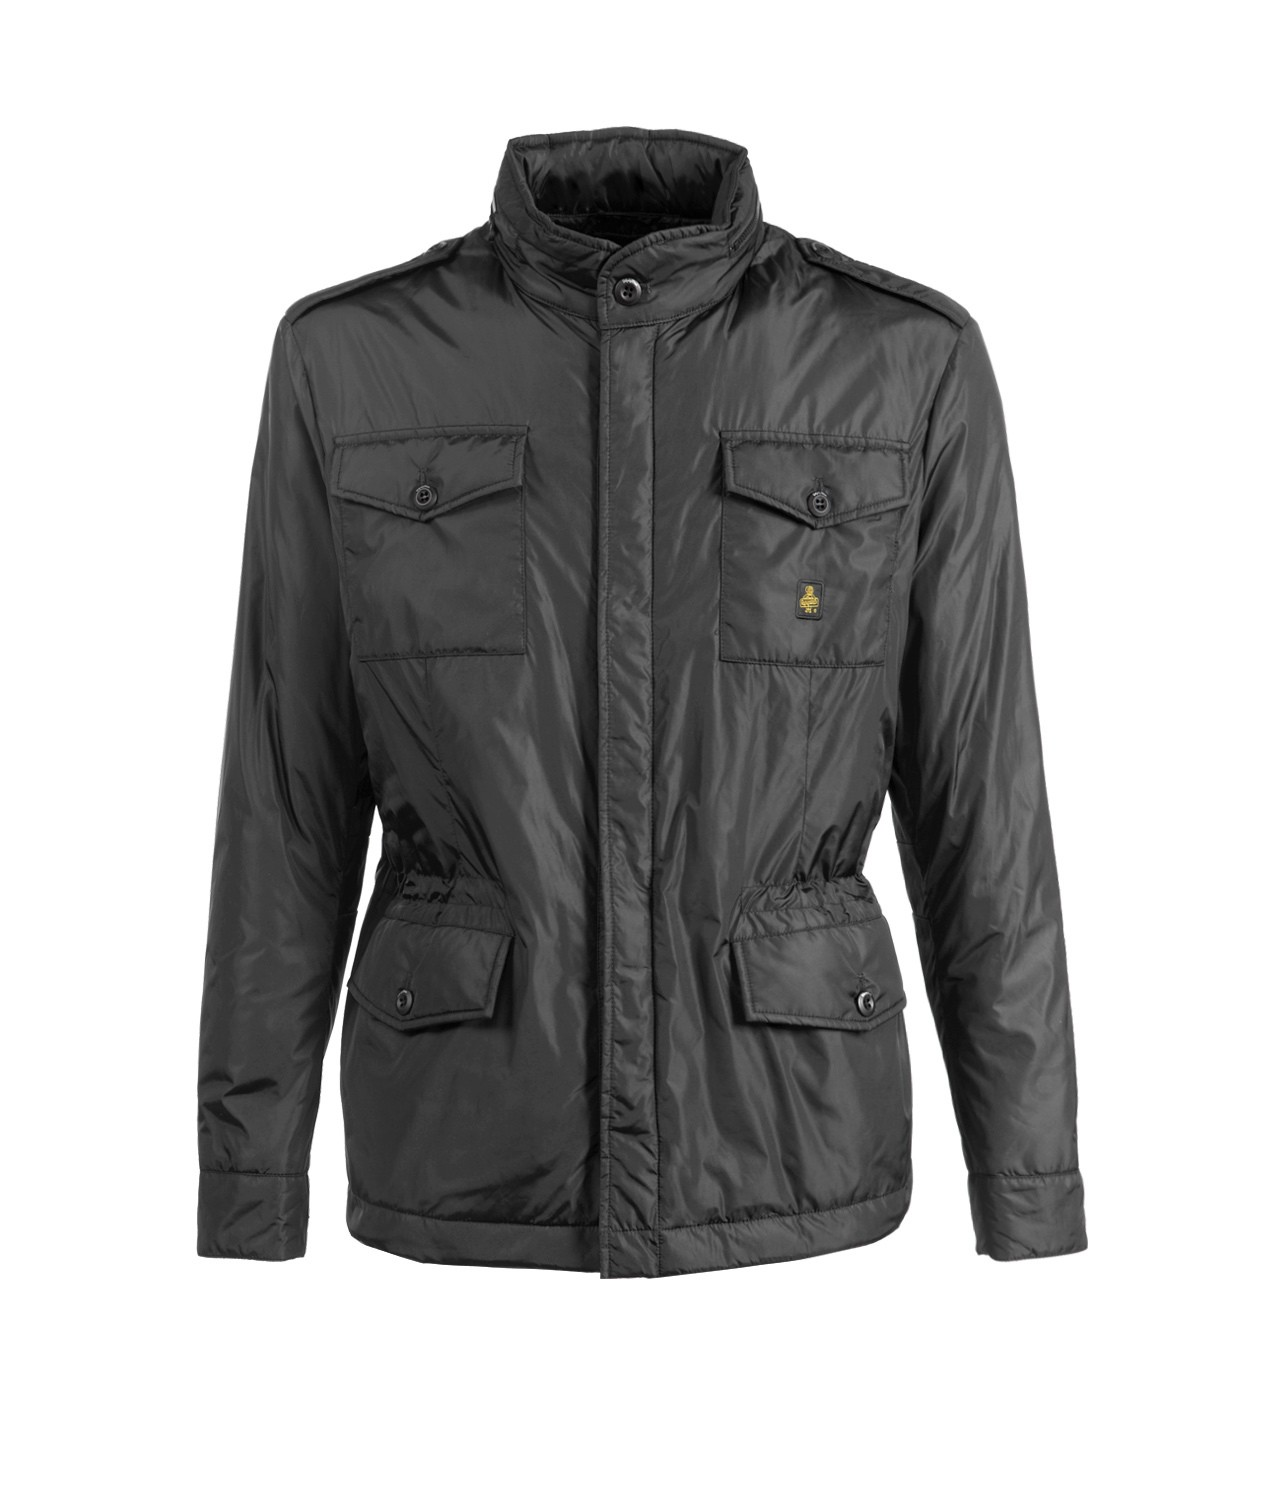 WINTER DAKAR JACKET